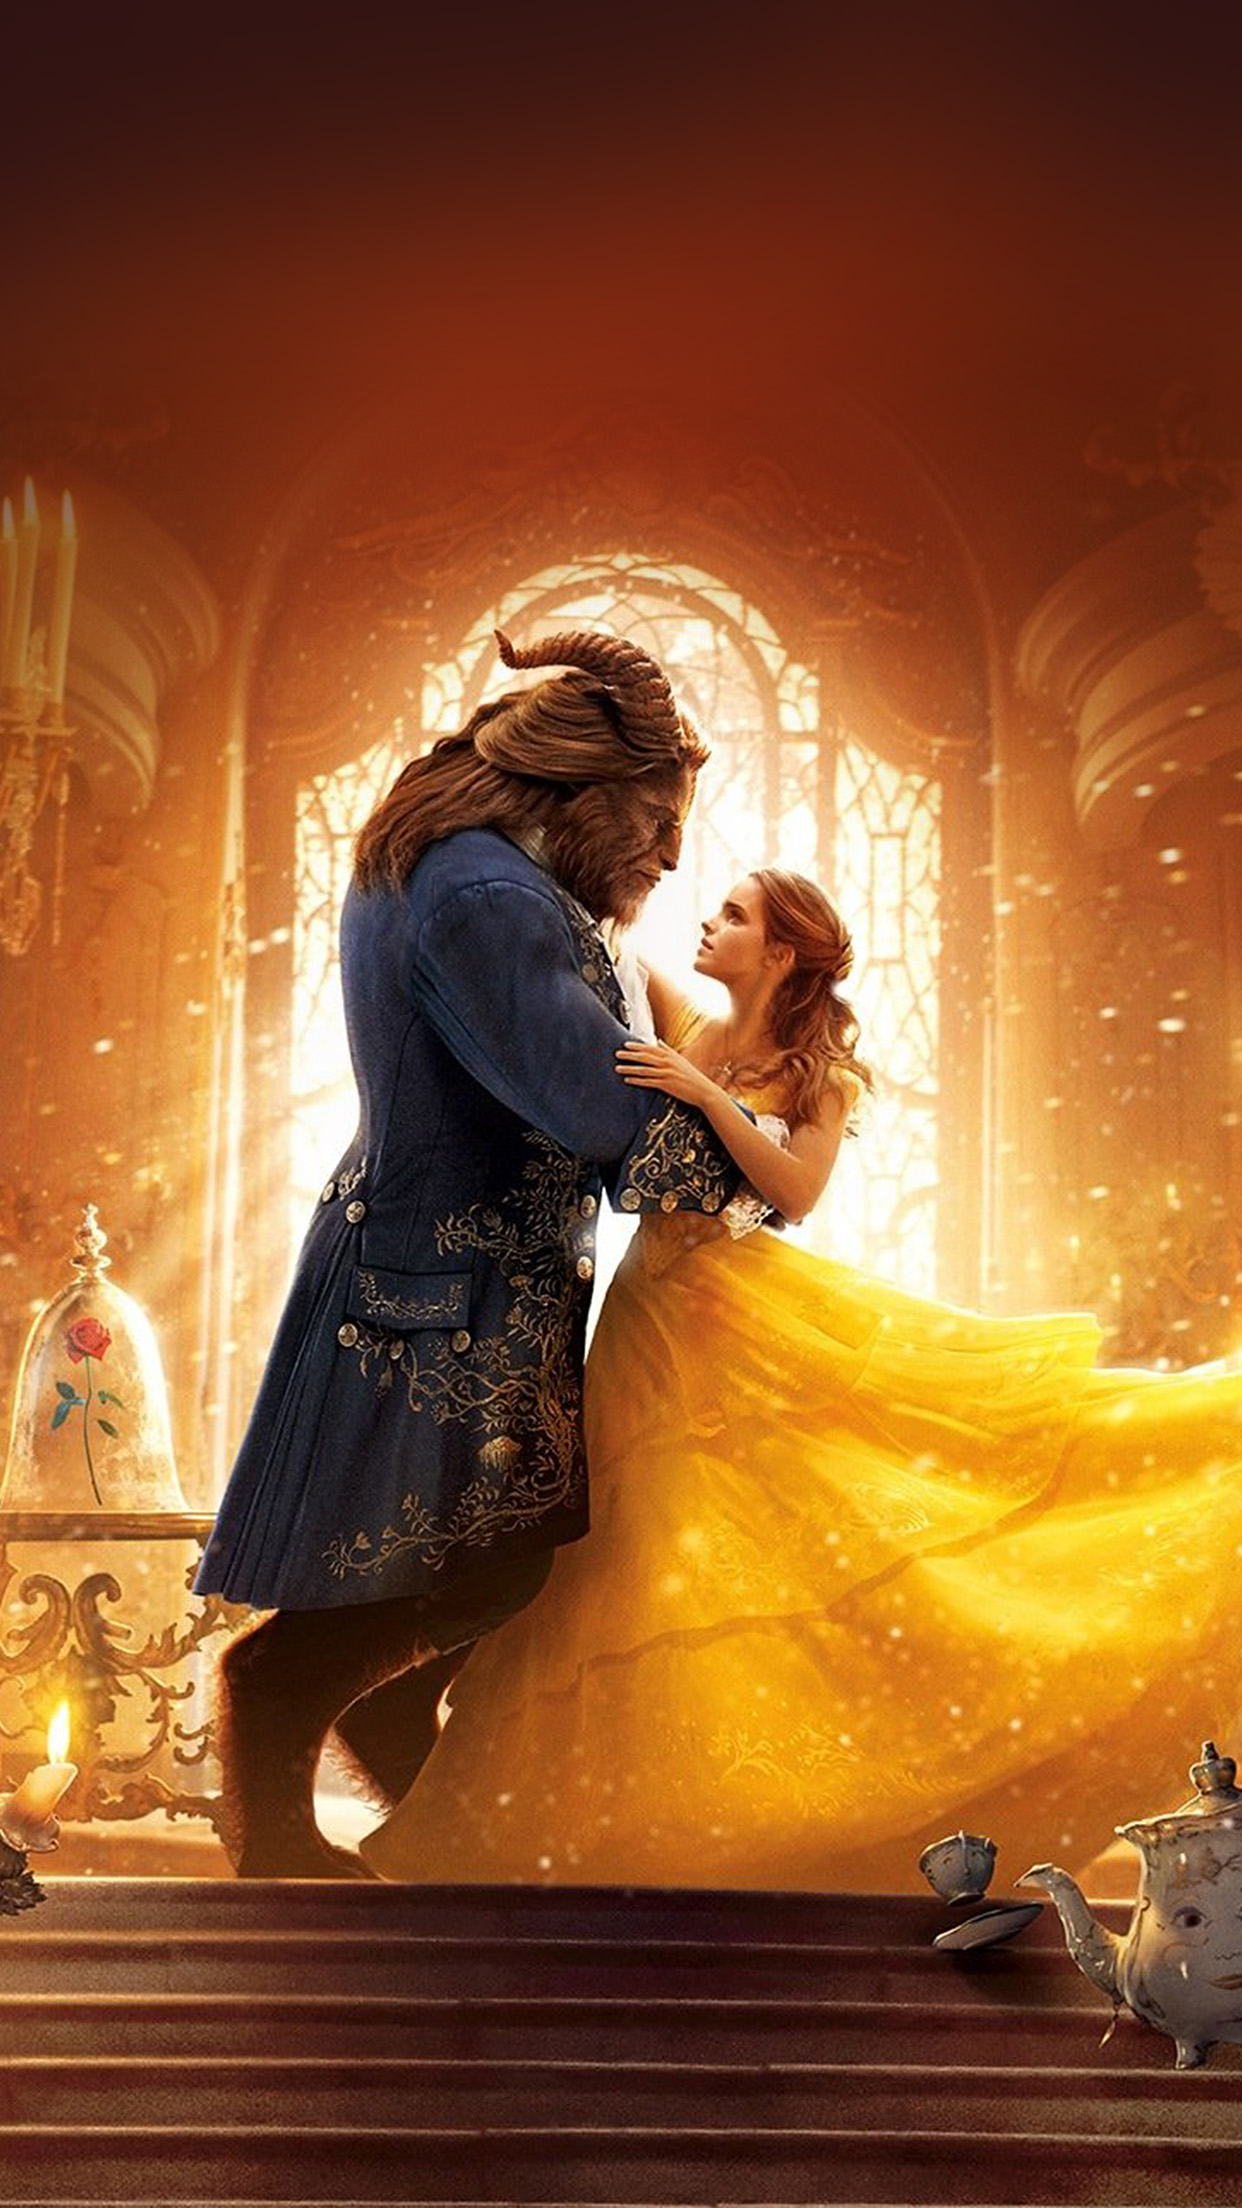 Beauty And Fashion Youtube: Ay51-beauty-beast-dance-film-illustration-art-wallpaper